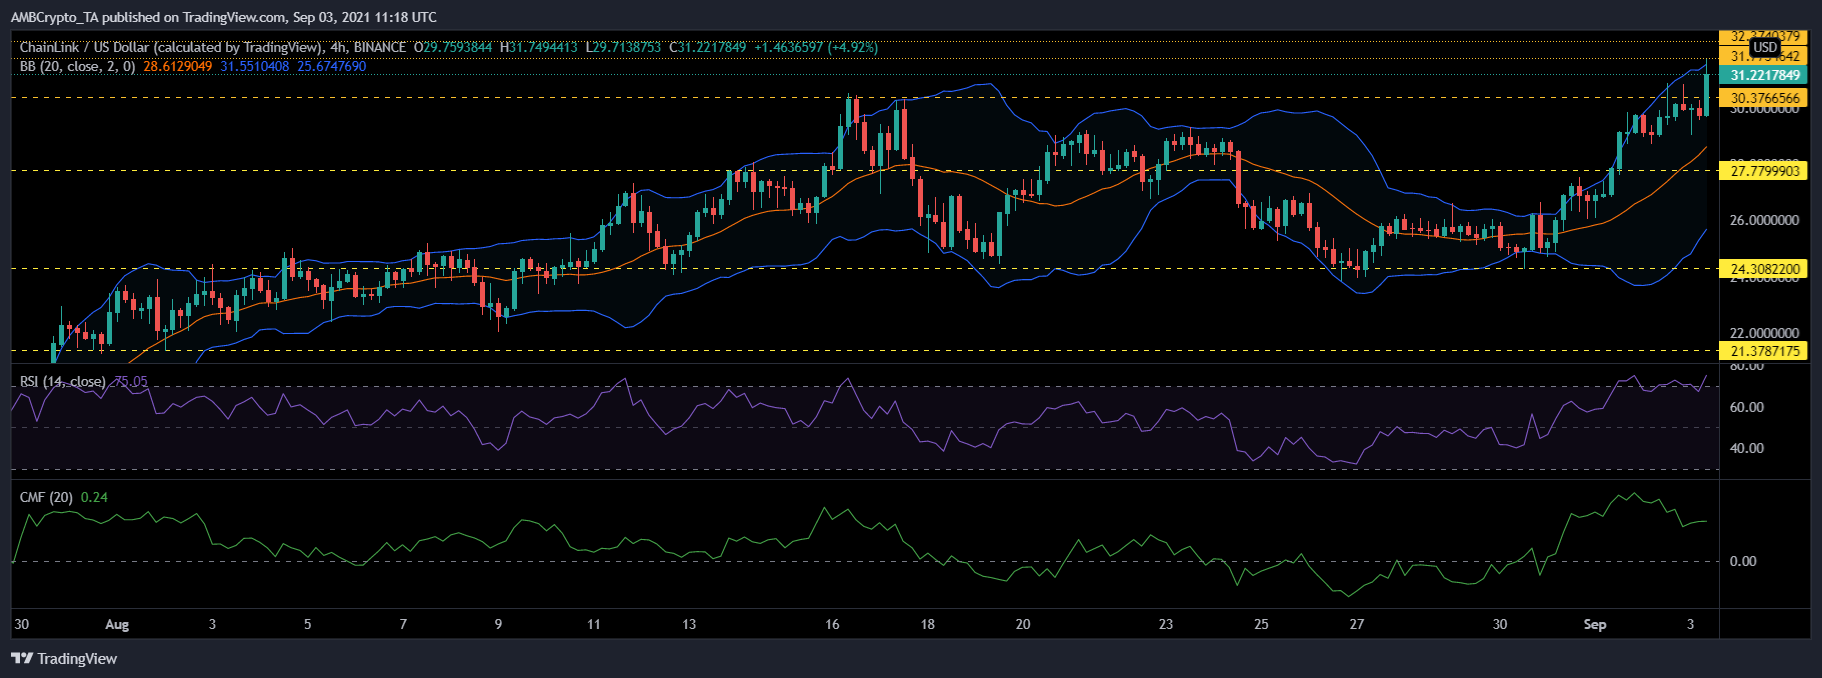 Chainlink, Solana and NEO Price Analysis: 03 September